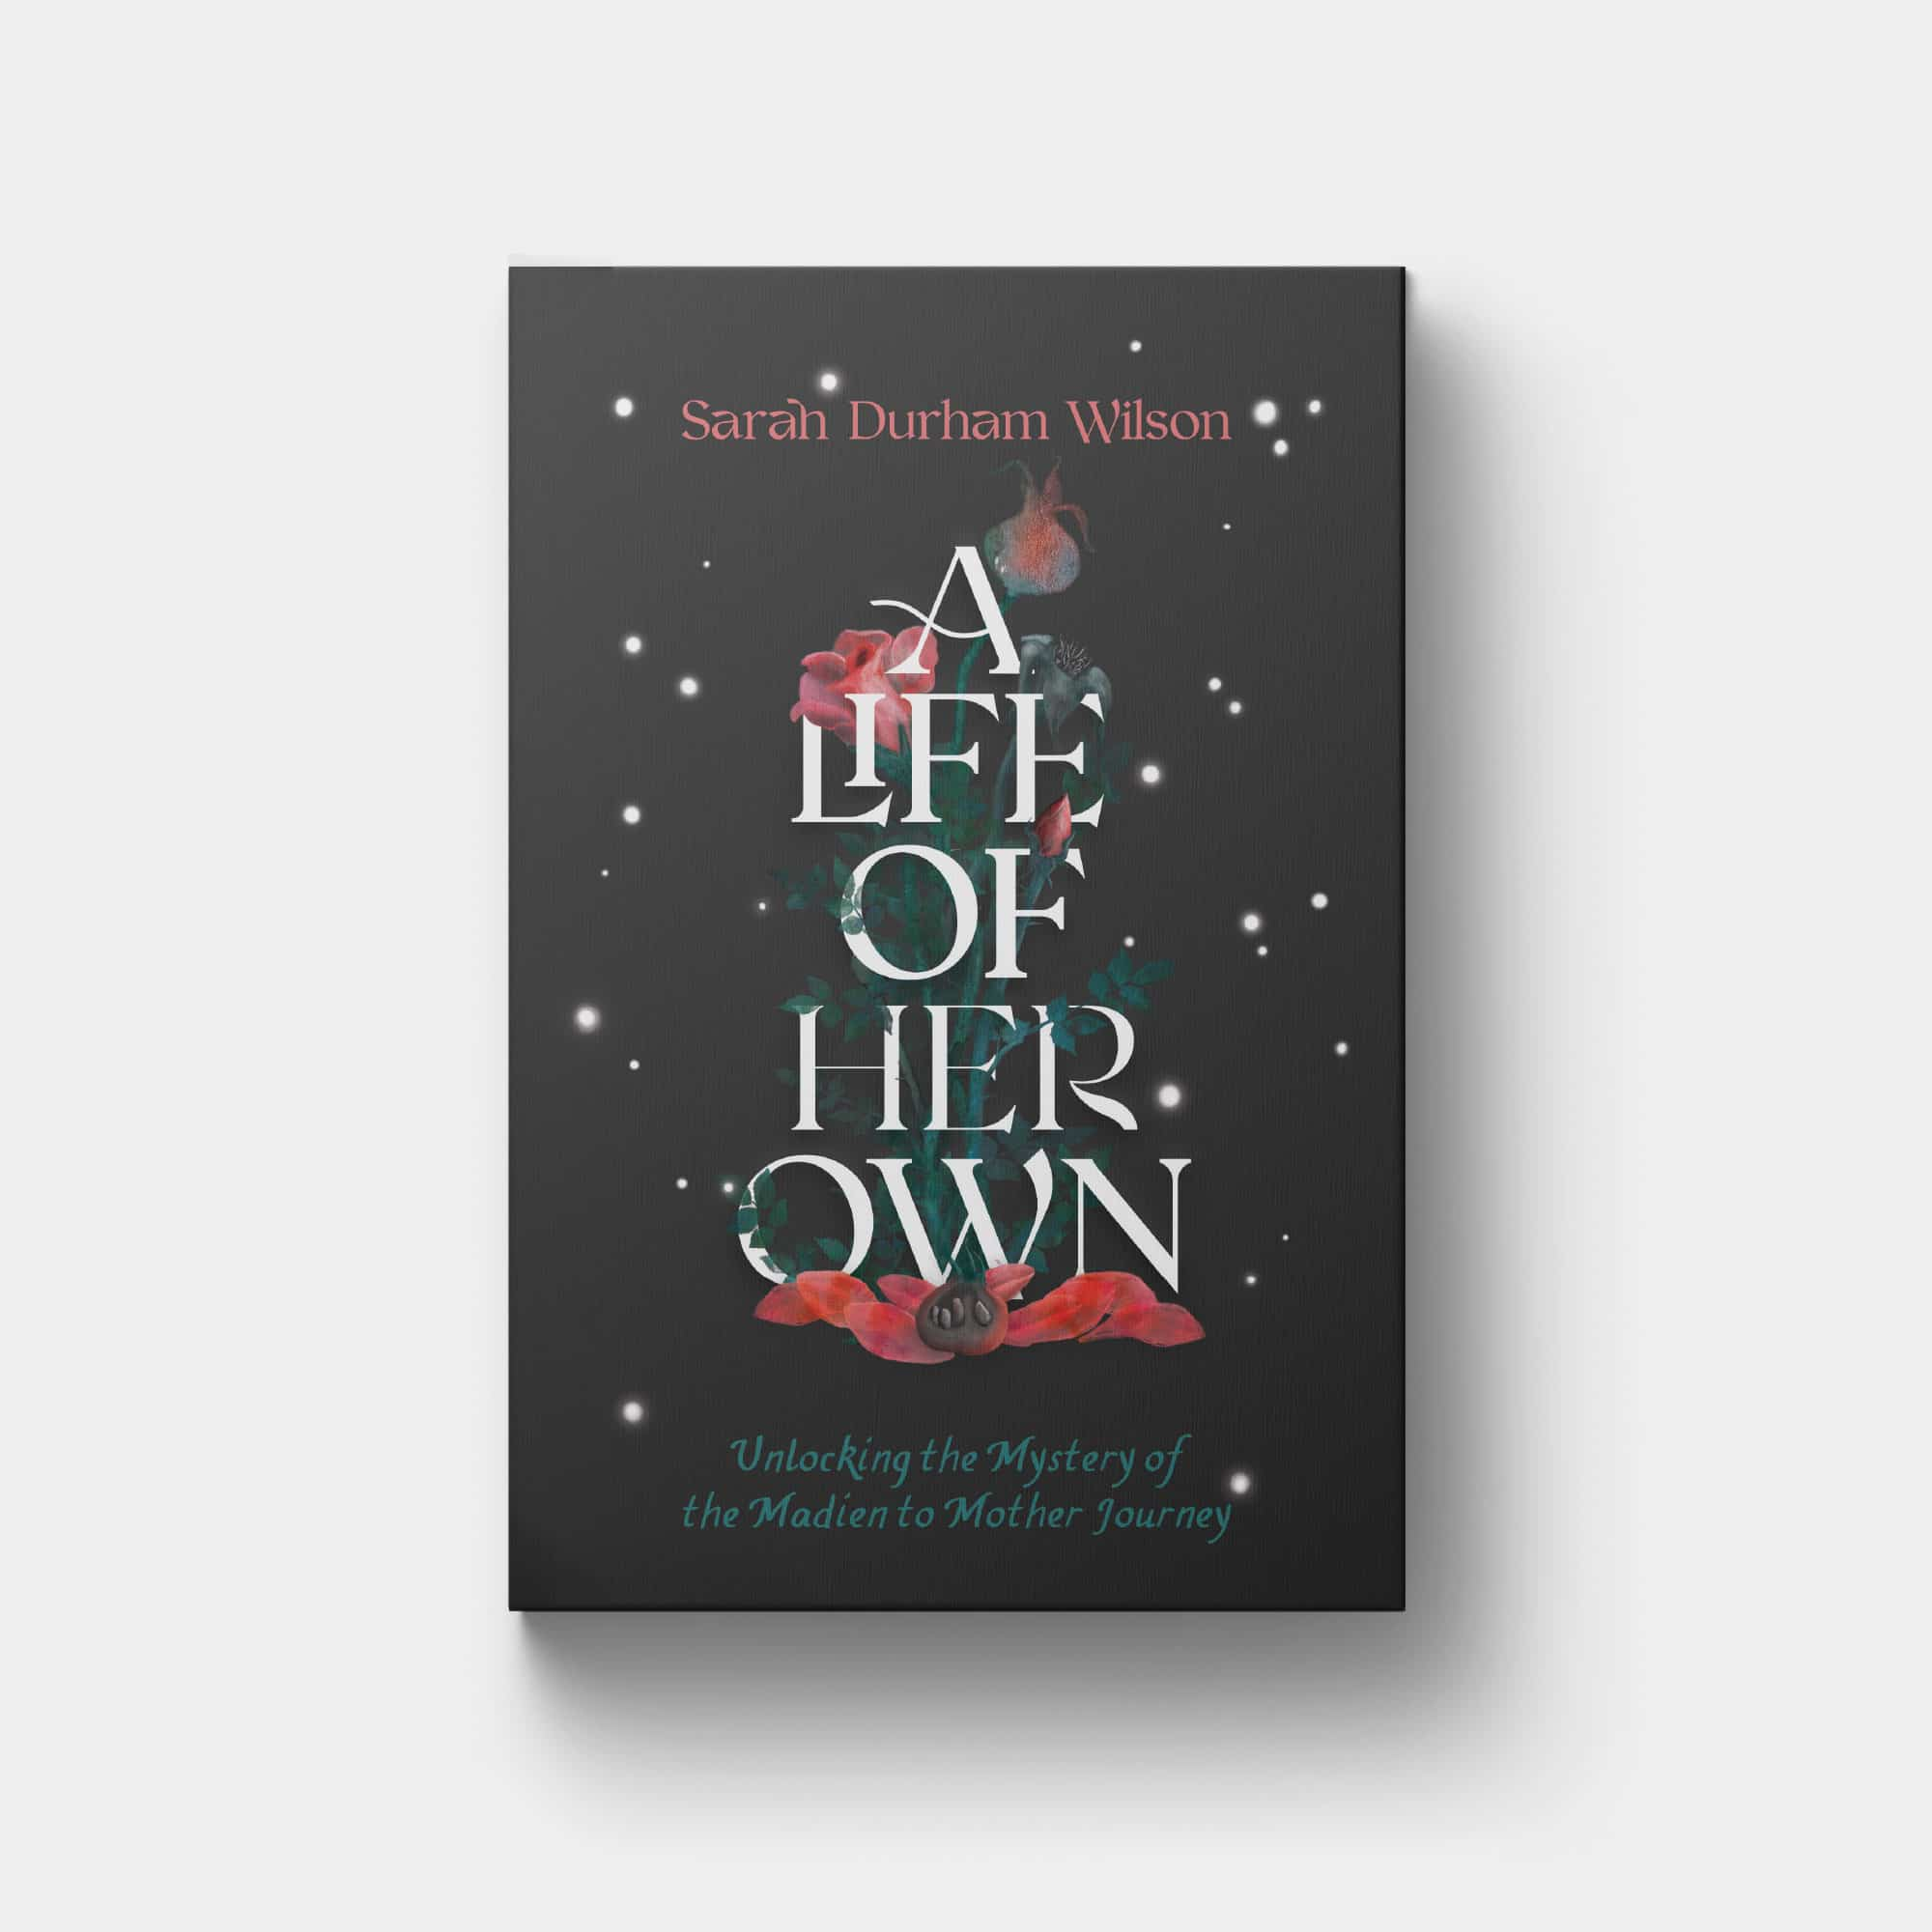 a-life-of-her-own-book-cover-design-illustration